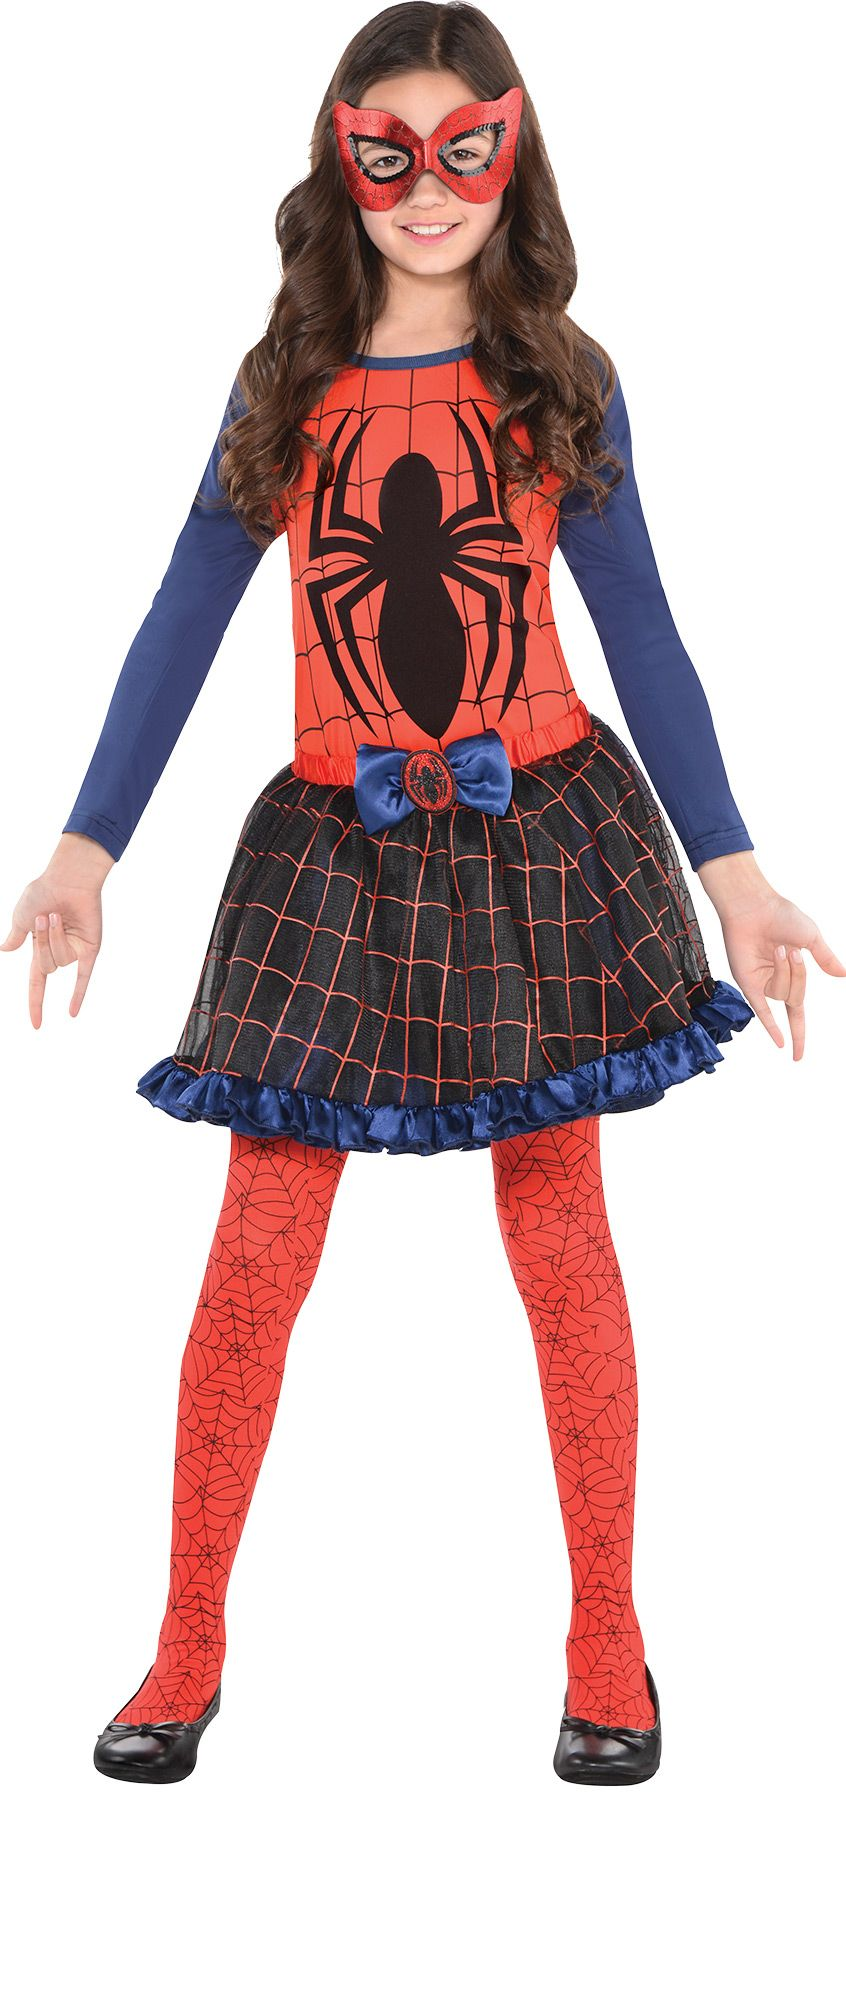 Create Your Own Look - Girls' Classic Spider-Girl